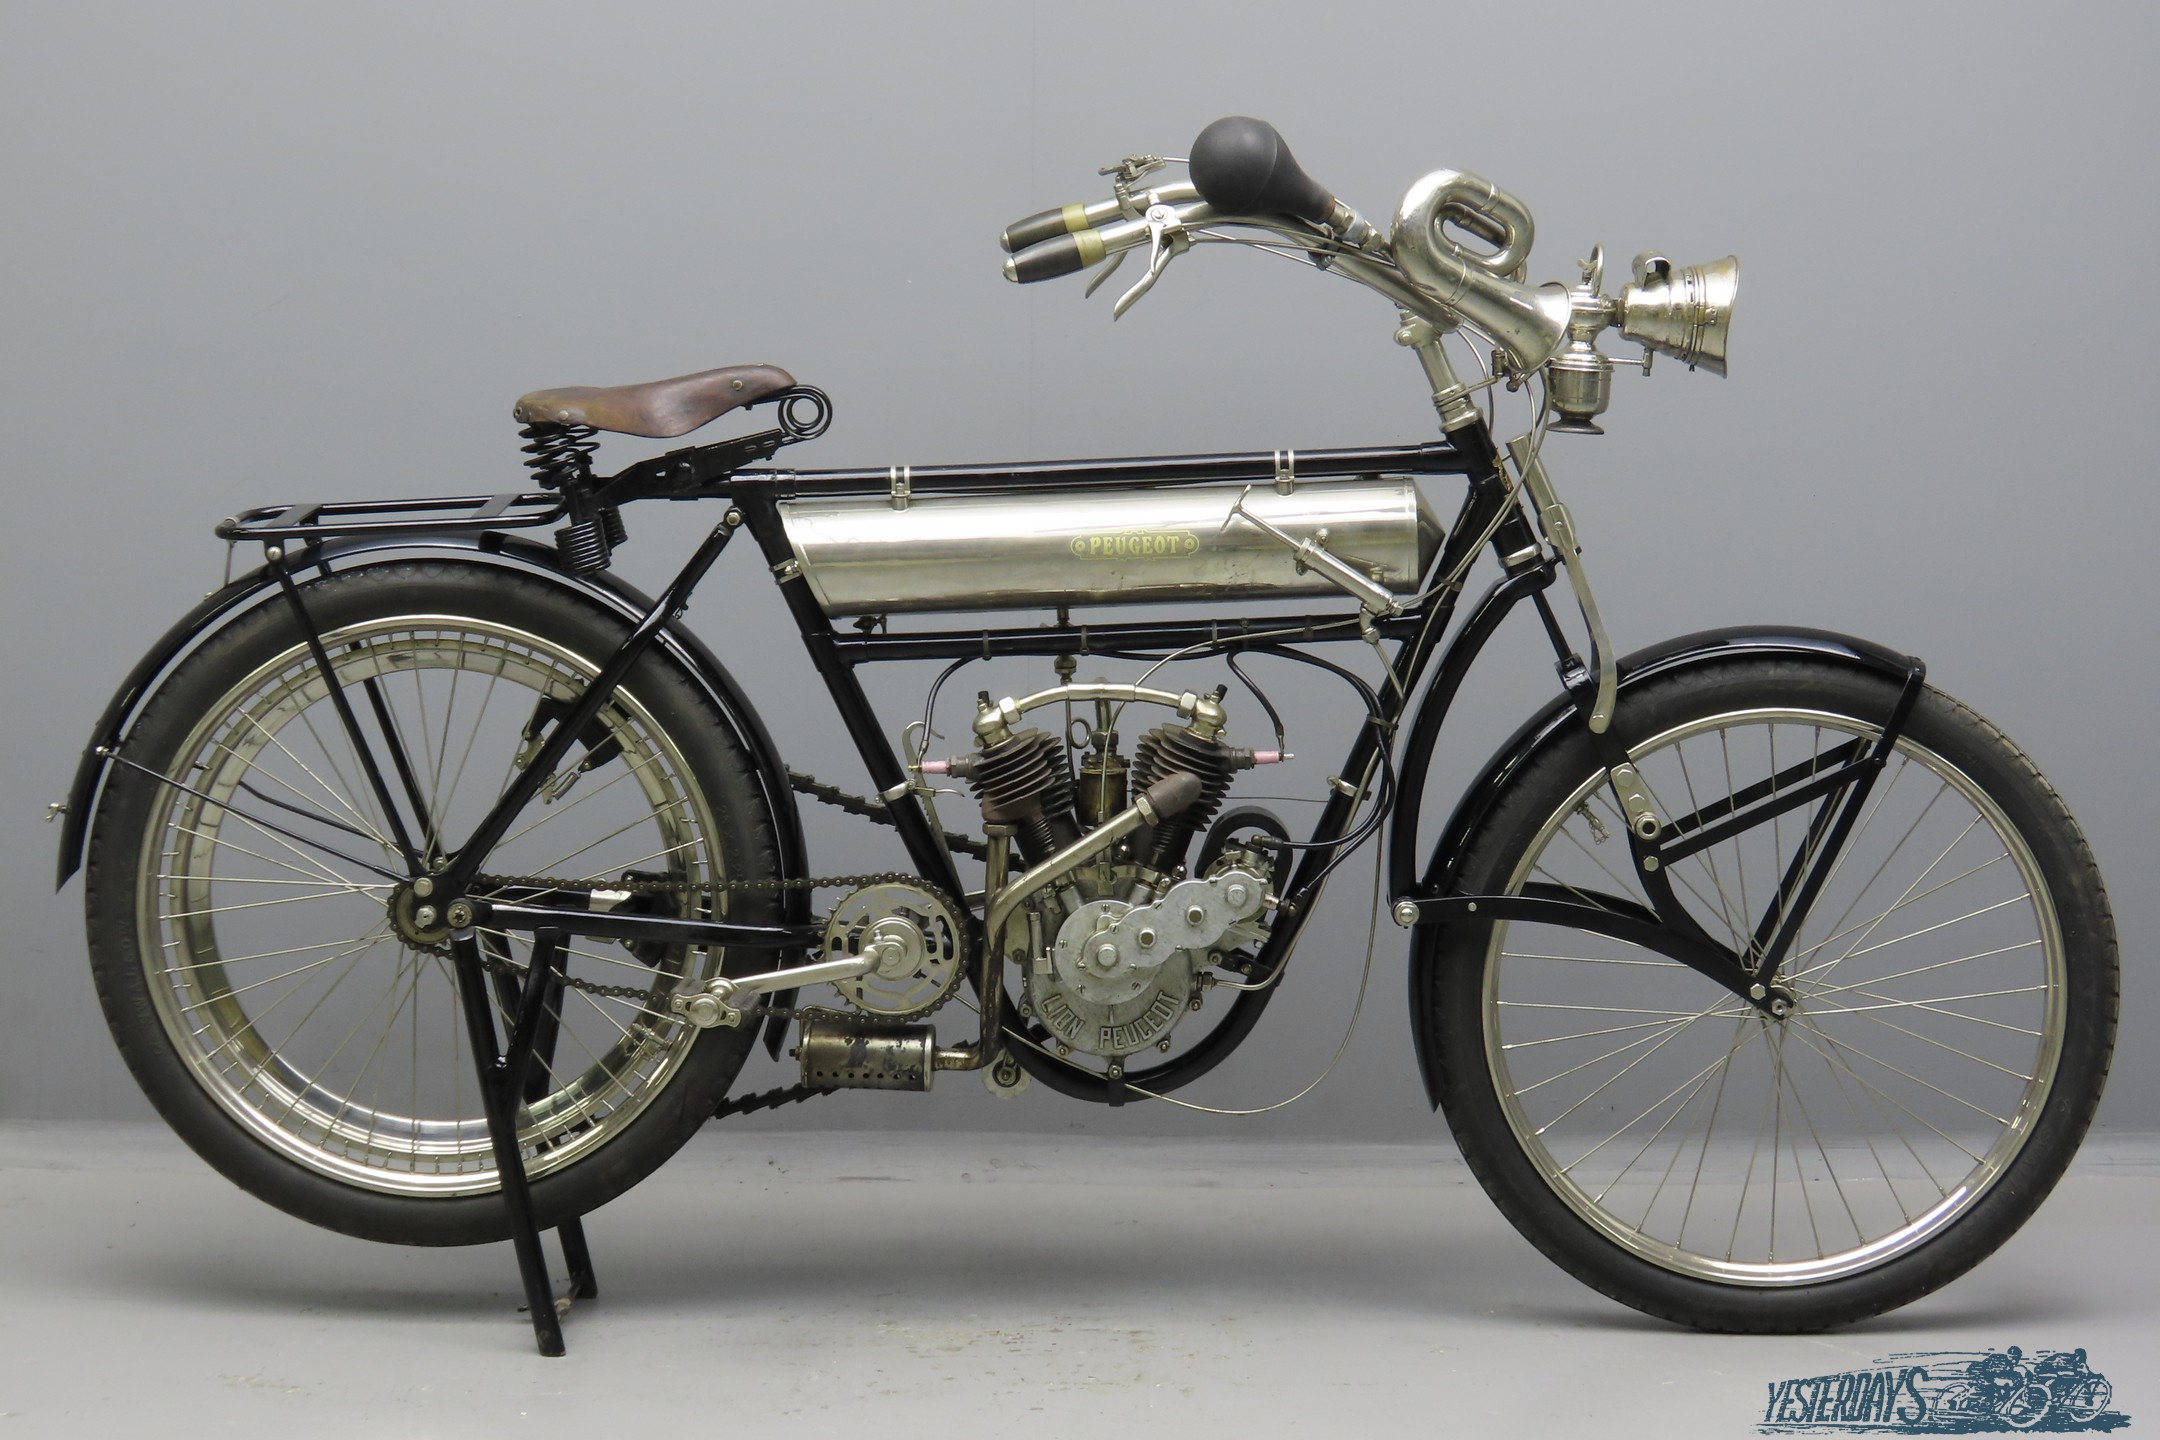 Peugeot 1913 Type MD2 380cc 2 cyl aiv  3010